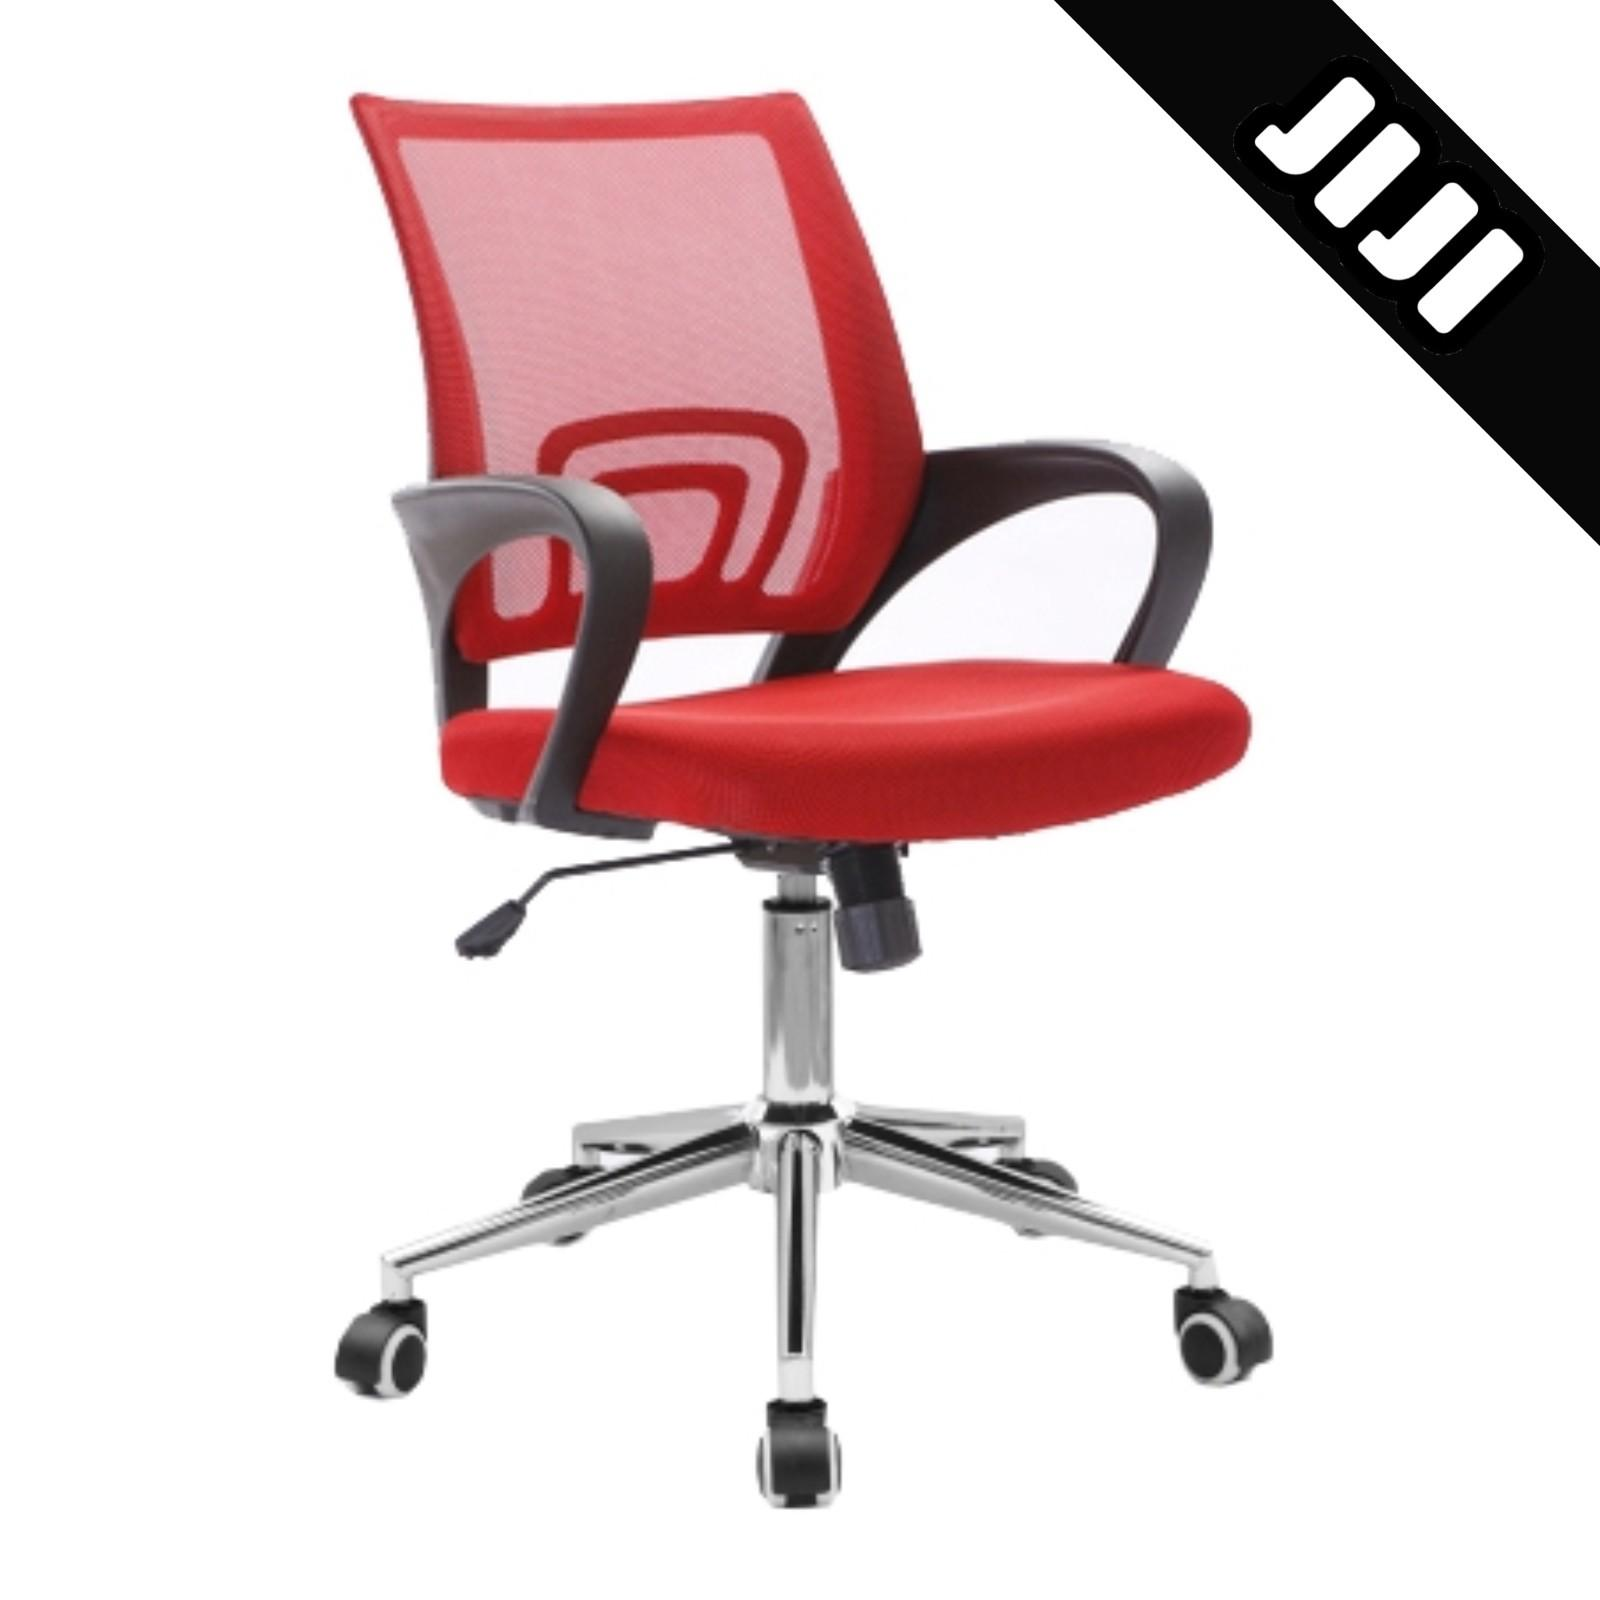 JIJI Typist Office Chair (Self-Assembly) - Office chairs / Study chair / Gaming chair / Ergonomic / Free Delivery (SG) Singapore